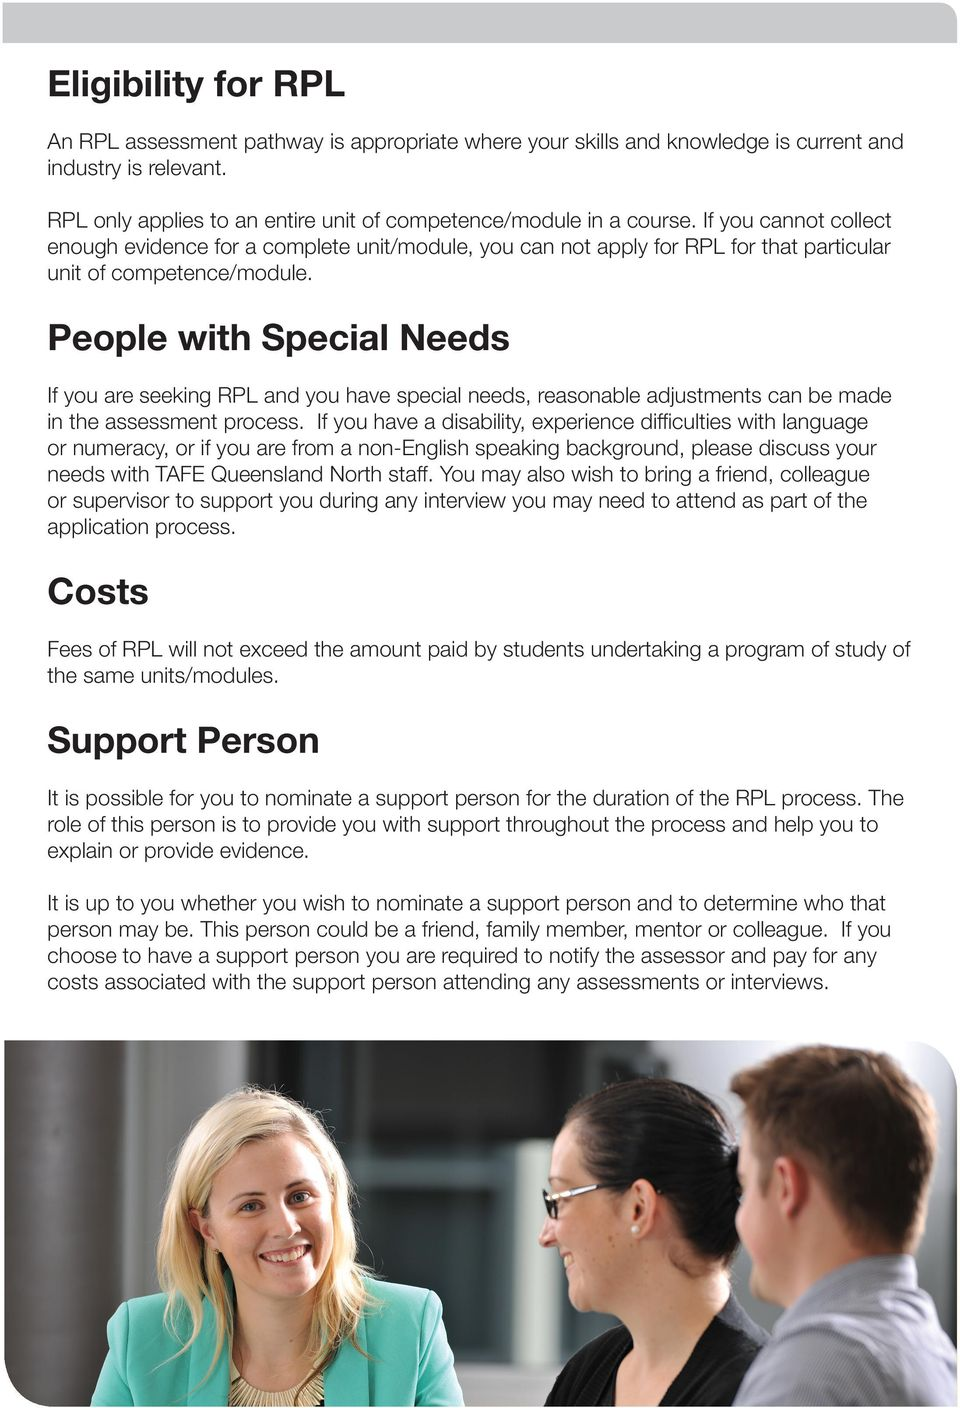 People with Special Needs If you are seeking RPL and you have special needs, reasonable adjustments can be made in the assessment process.